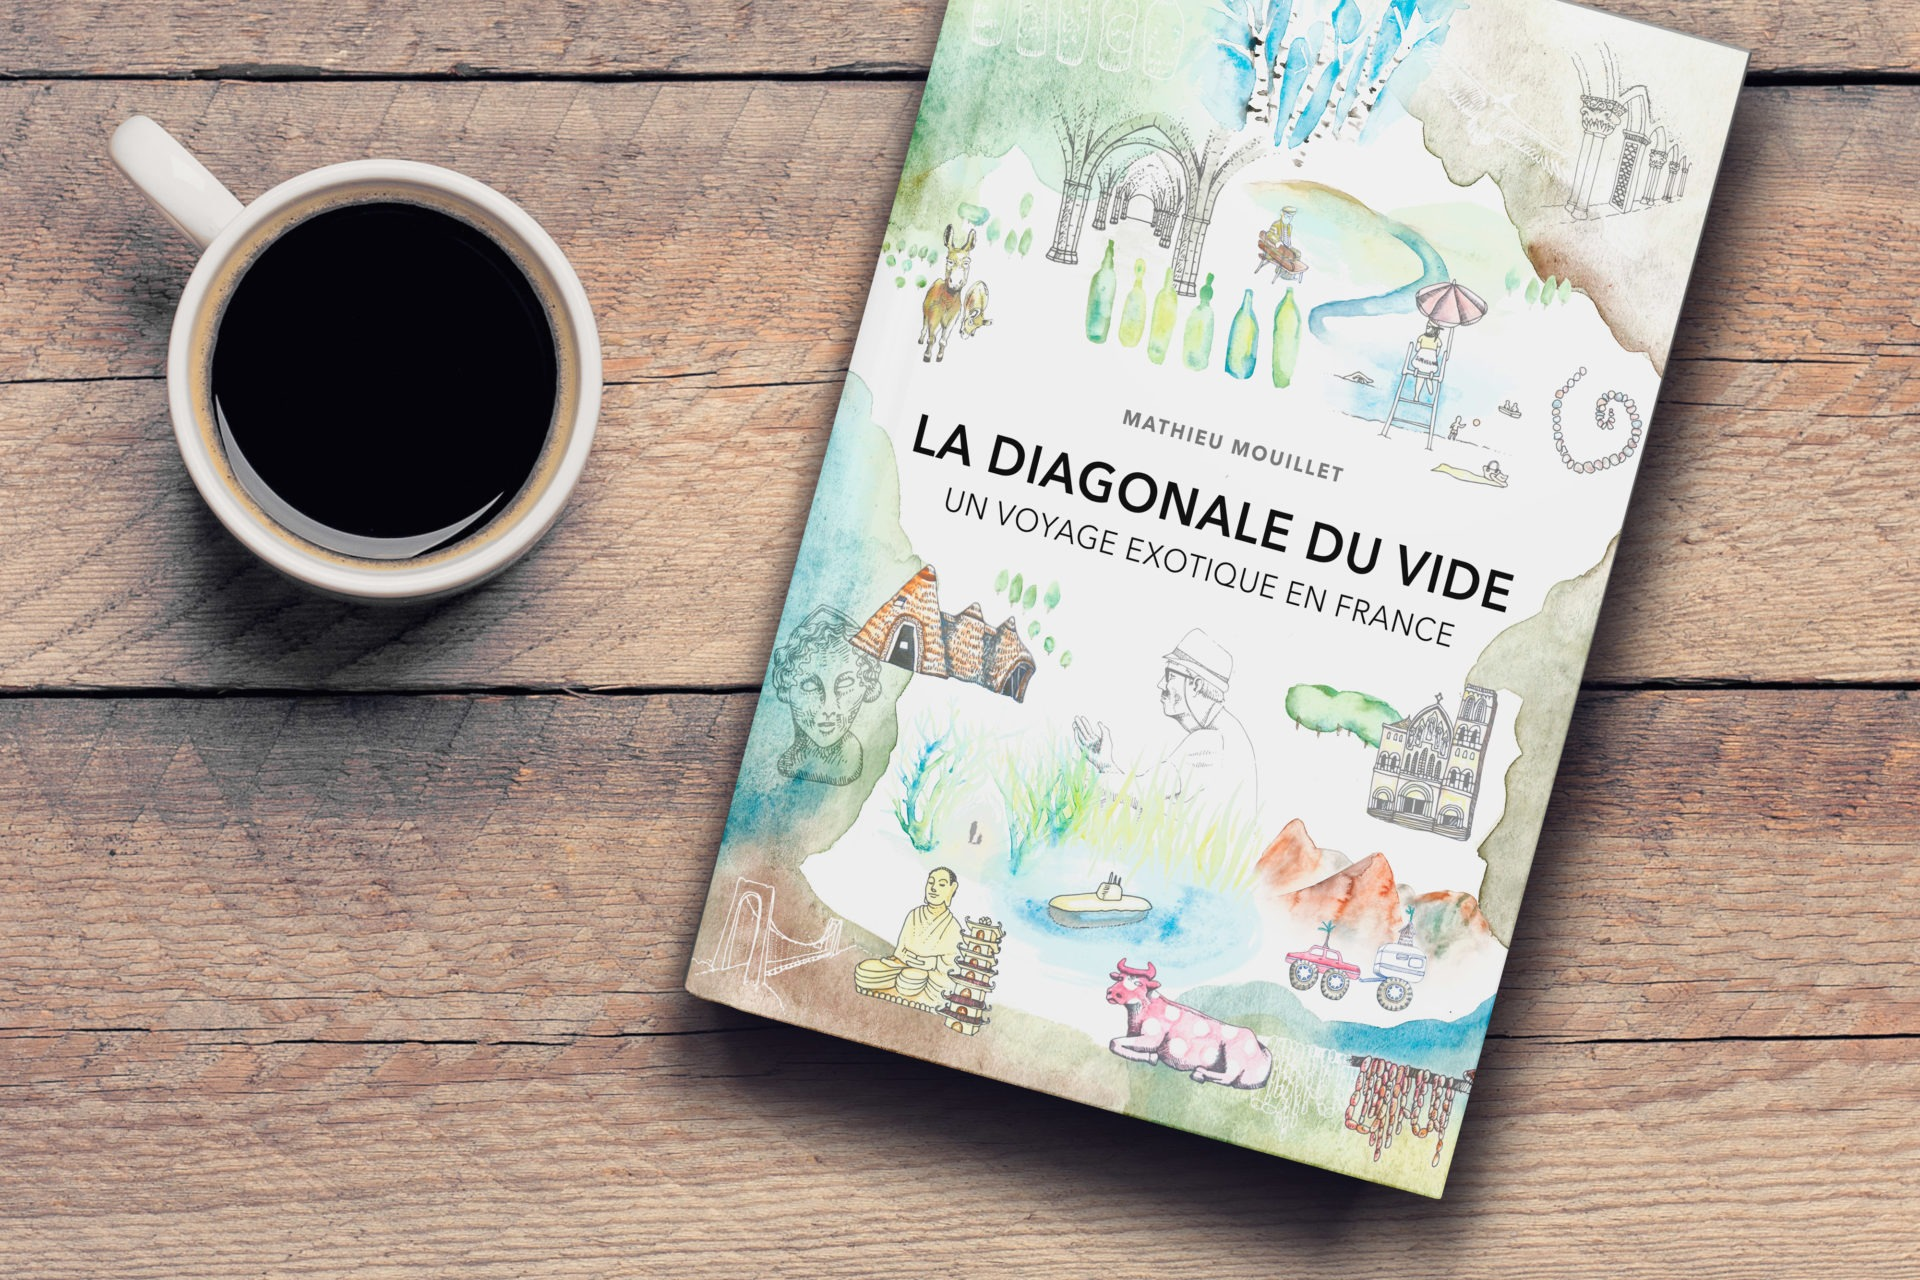 020 6x9 Table Top Book Coffee Template Mockup COVERVAULT - Les globe blogueurs - blog voyage nature